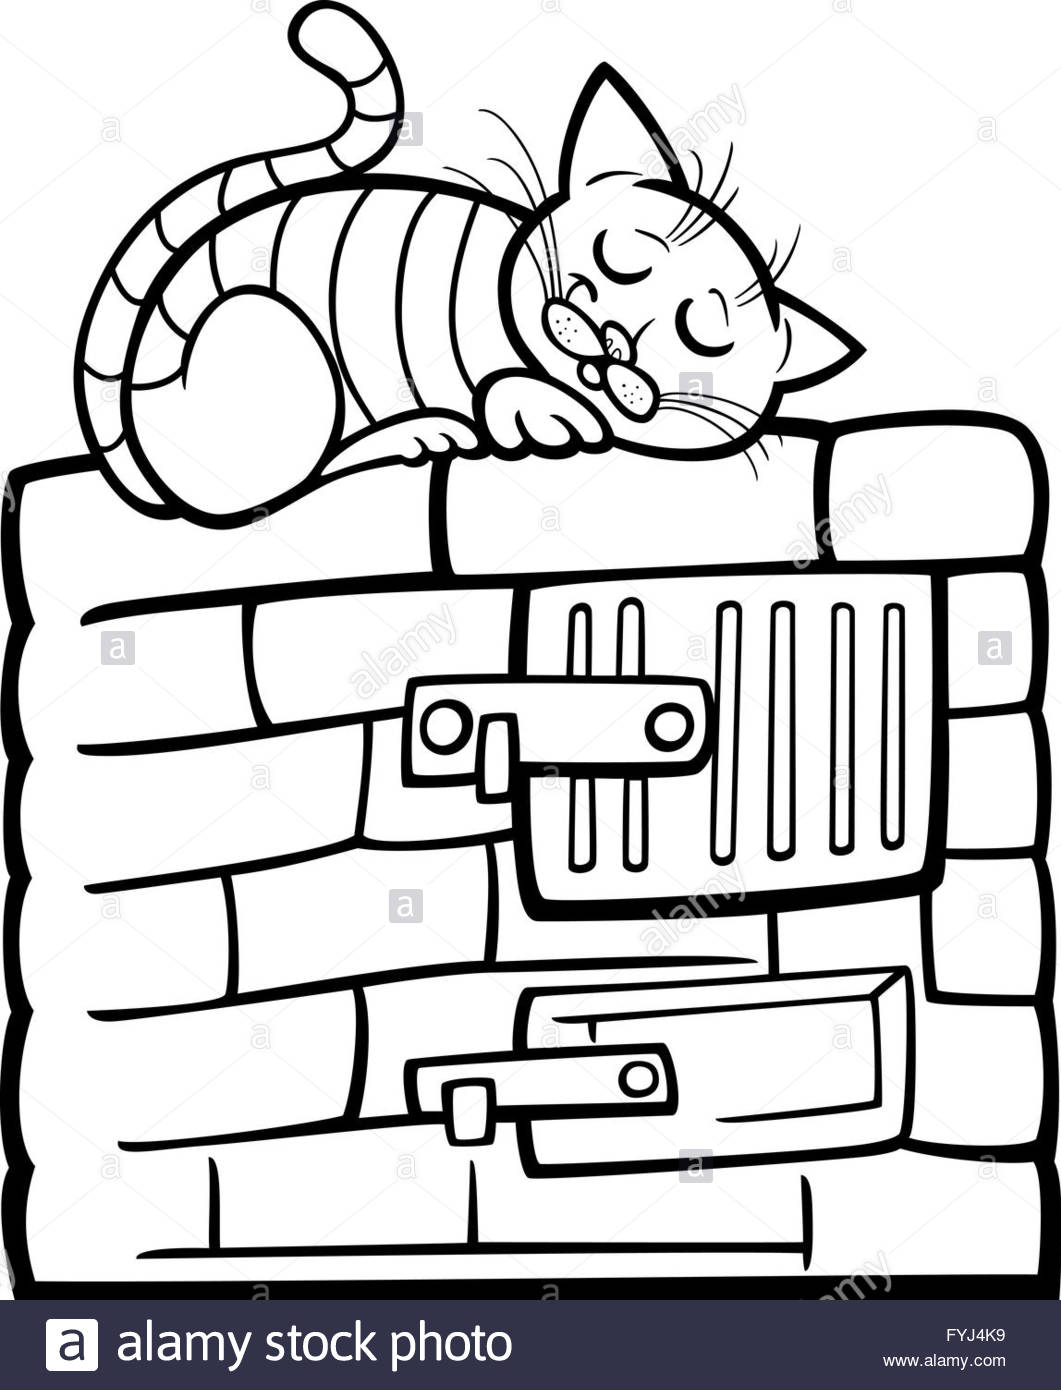 1061x1390 Cat On Stove Cartoon Coloring Page Stock Photo, Royalty Free Image